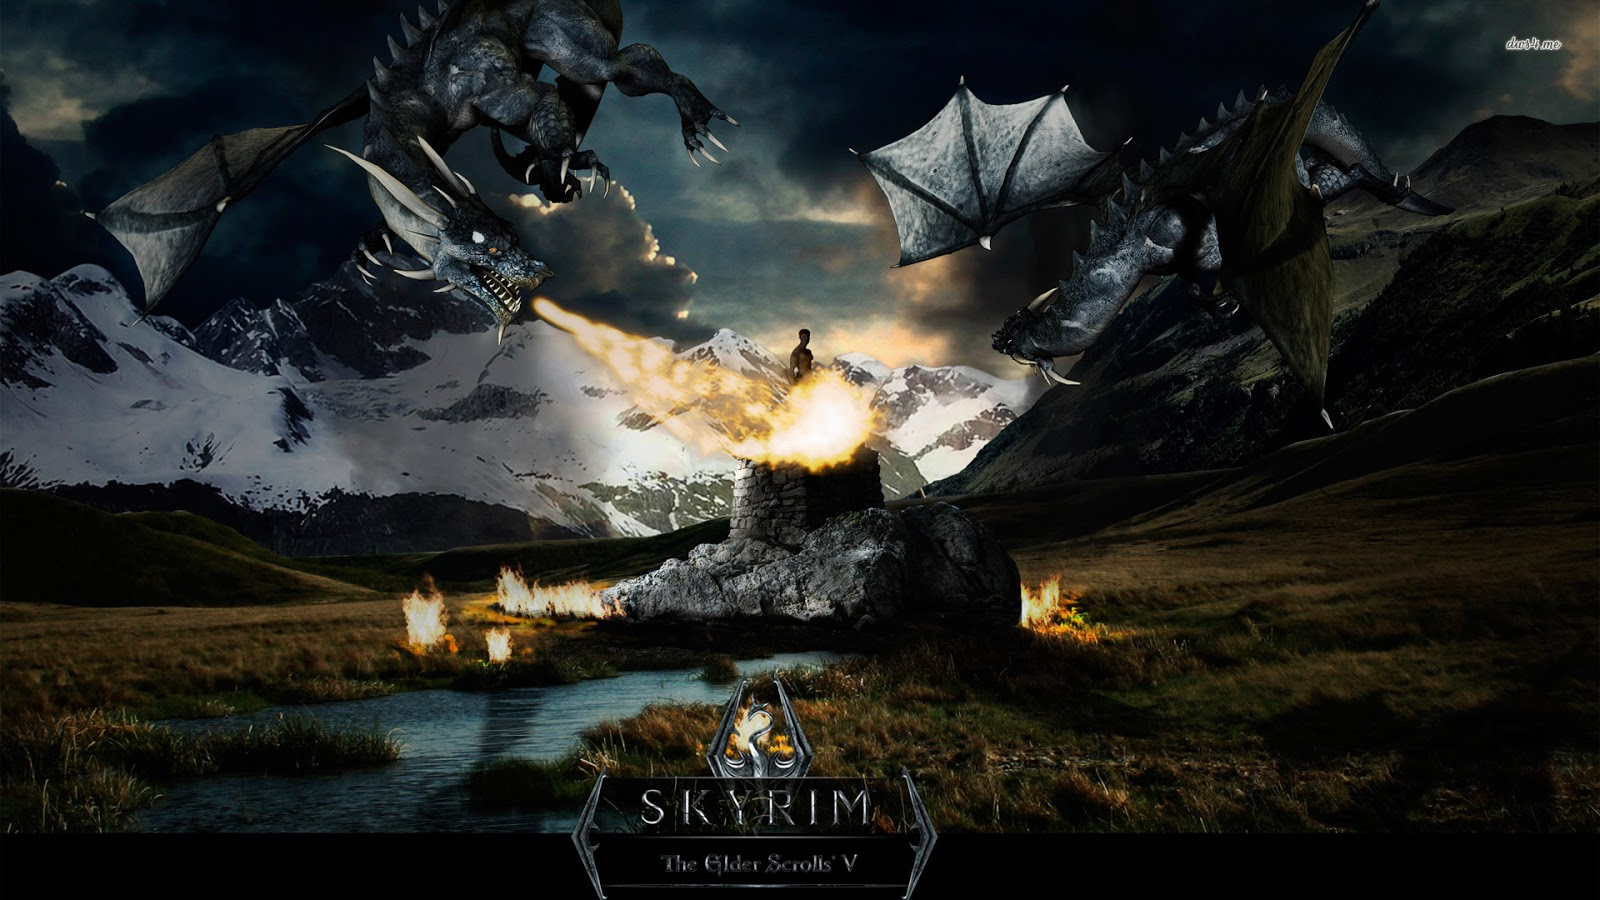 Skyrim HD Wallpapers Backgrounds HQ Wallpapers   Wallpapers 1600x900